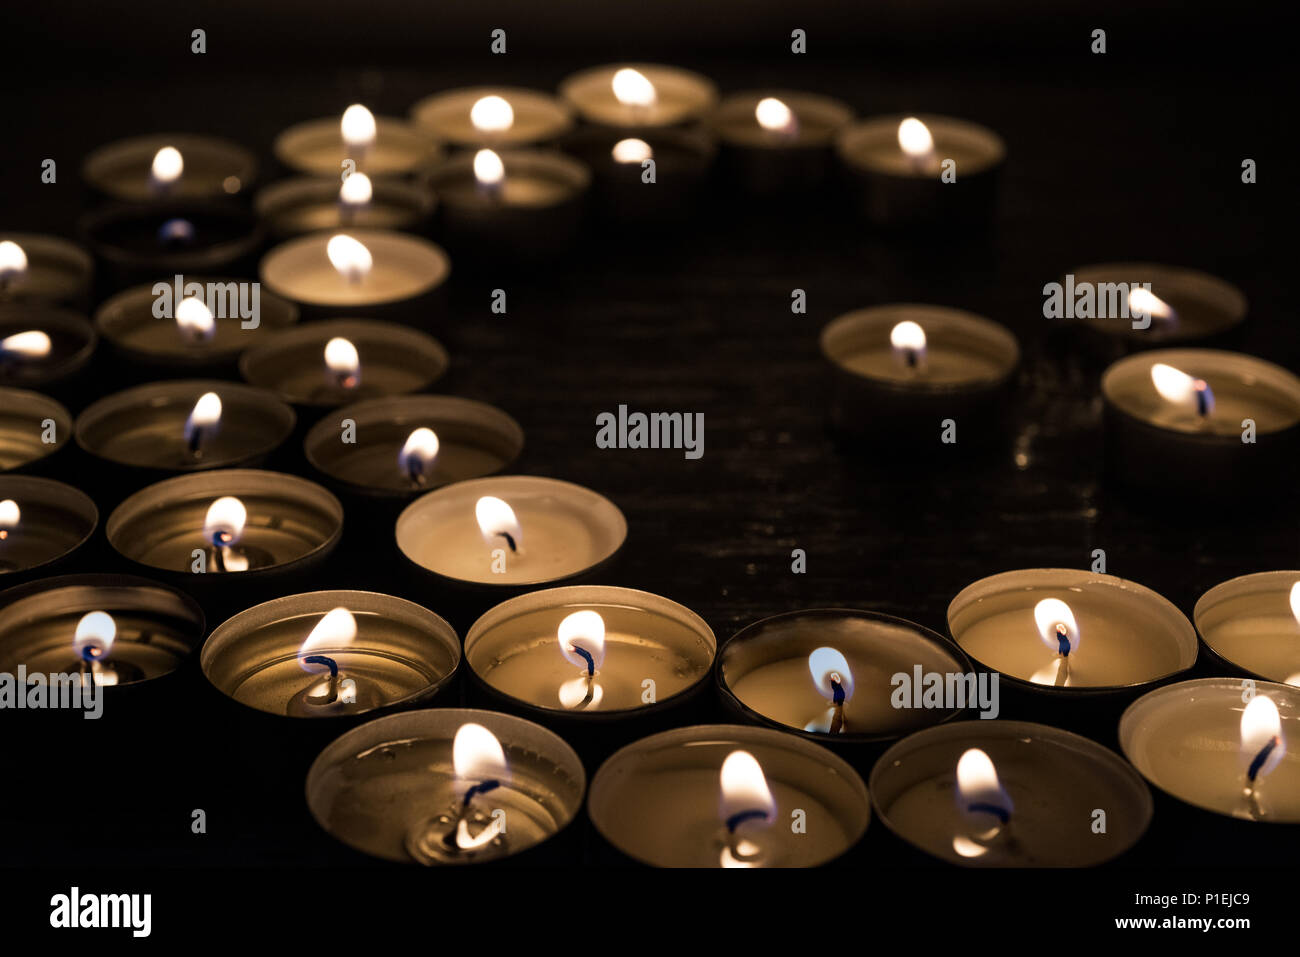 Symbols of Islam. Candle lights on black background. Abstract isolated photo. - Stock Image